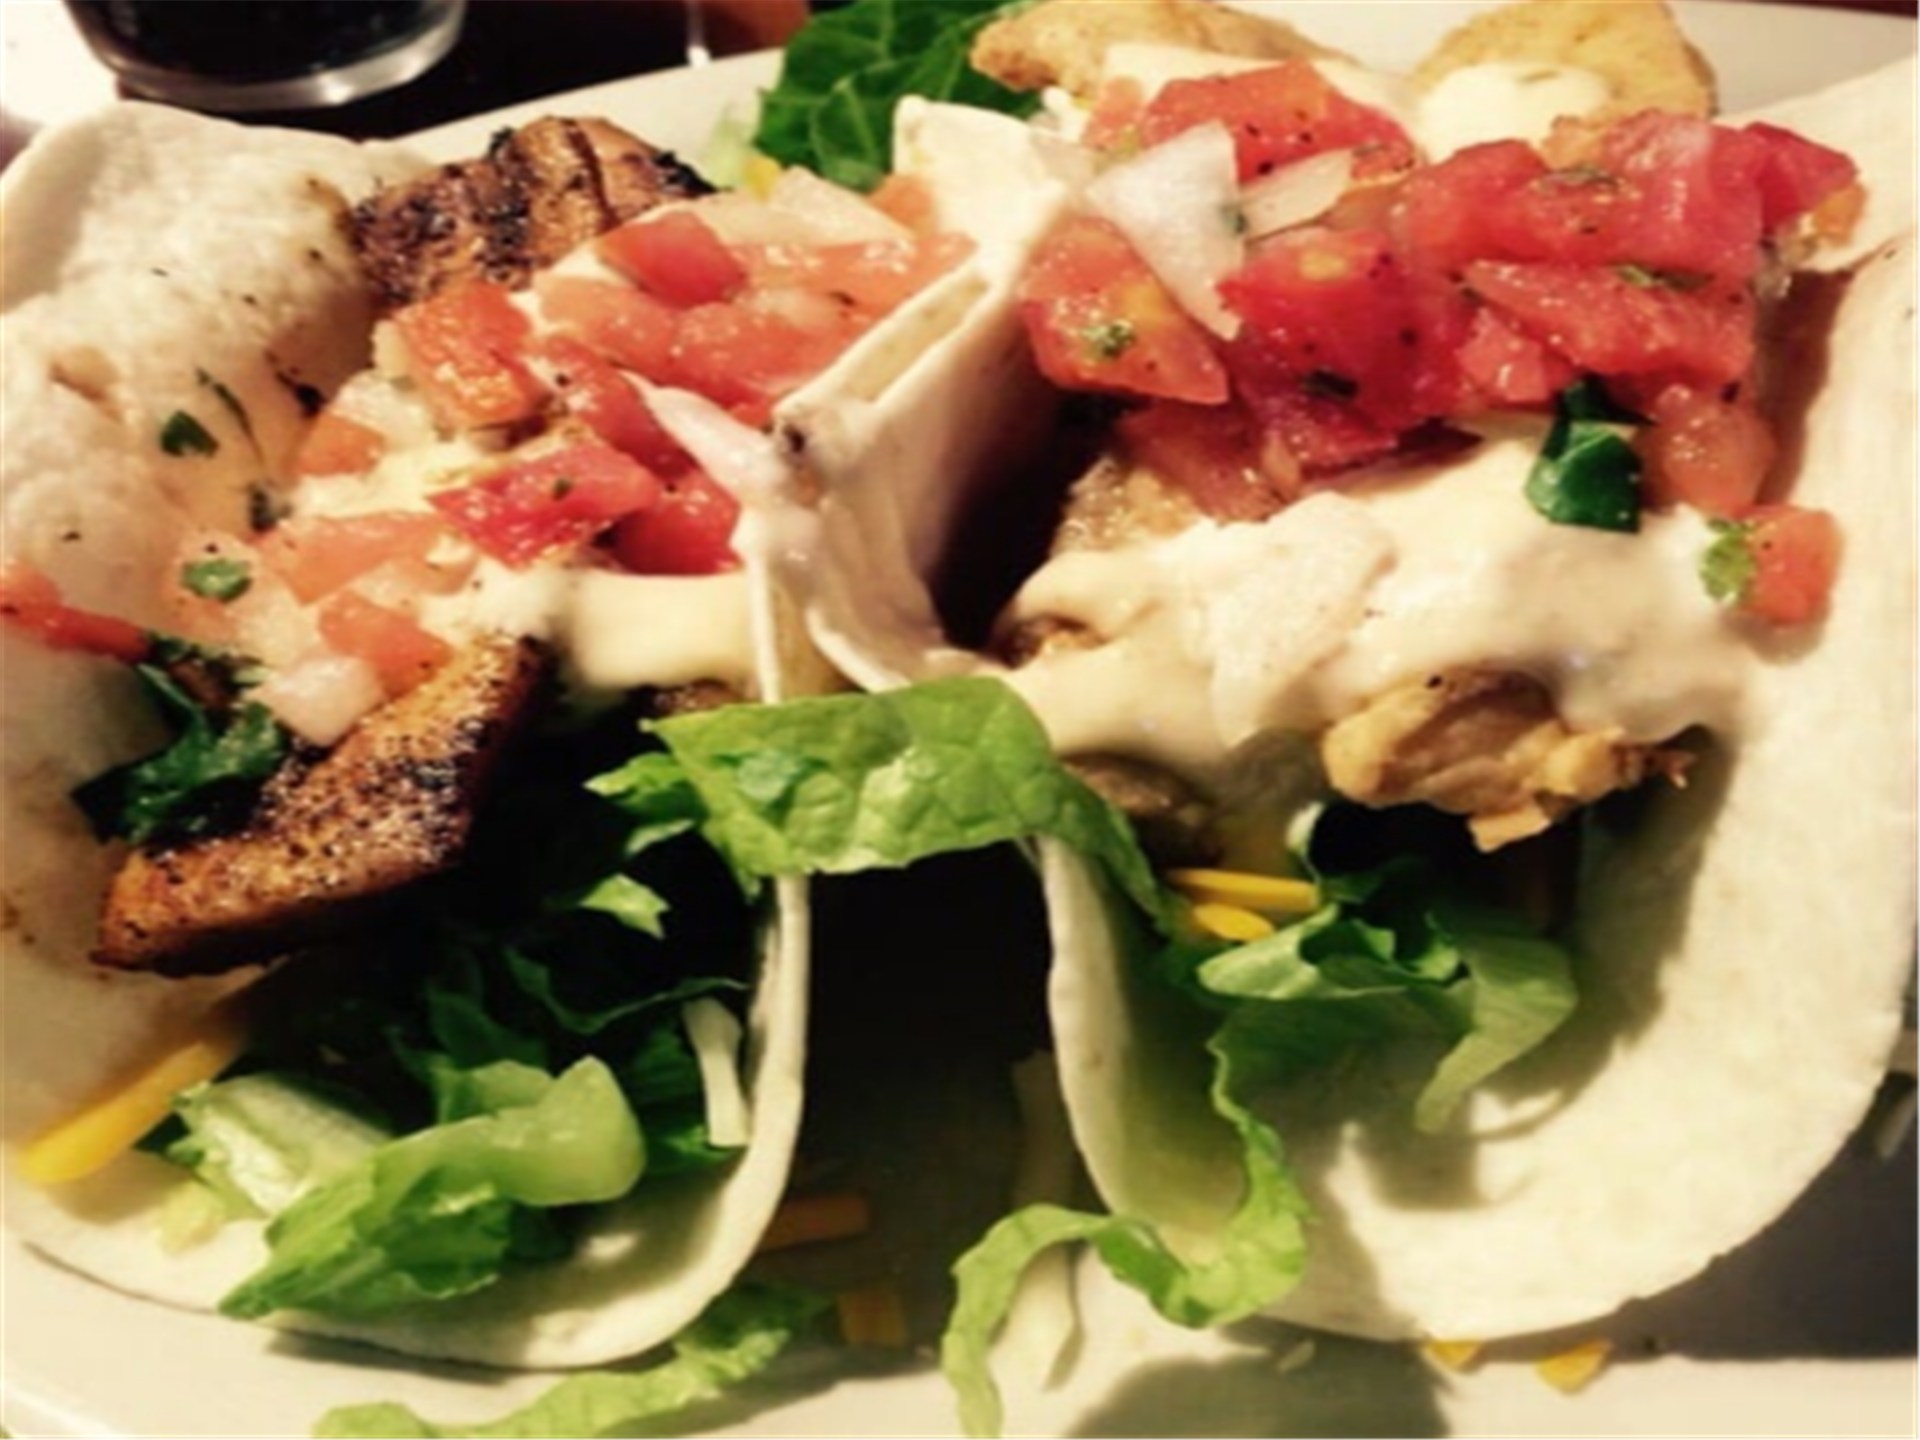 fish tacos topped with lettuce and tomatoes